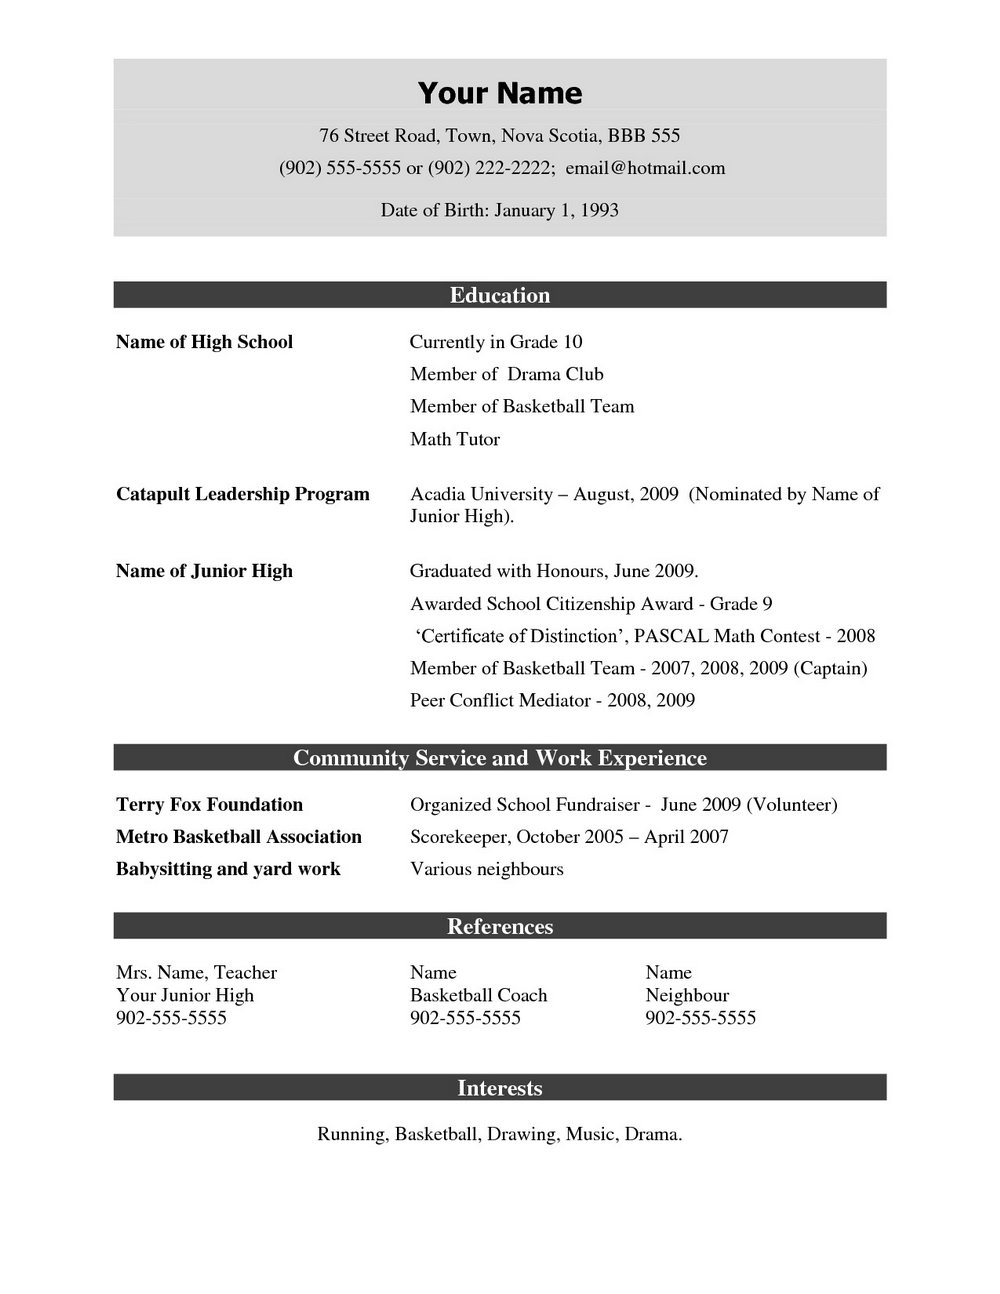 Simple Html Resume Templates Free Download